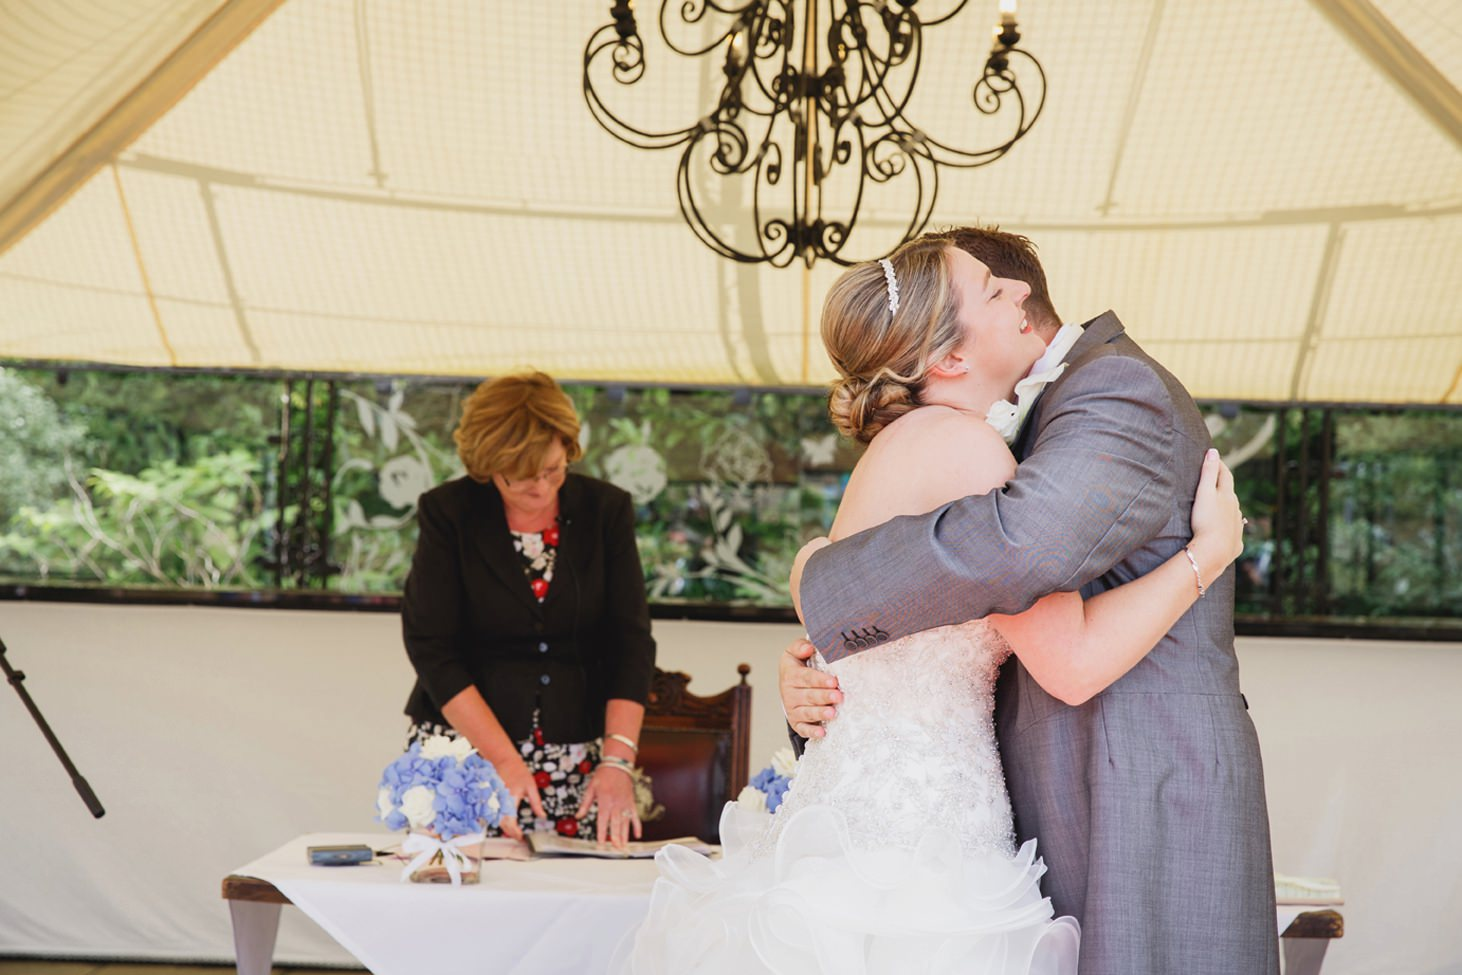 South Lodge Hotel wedding photography sarah ann wright 022